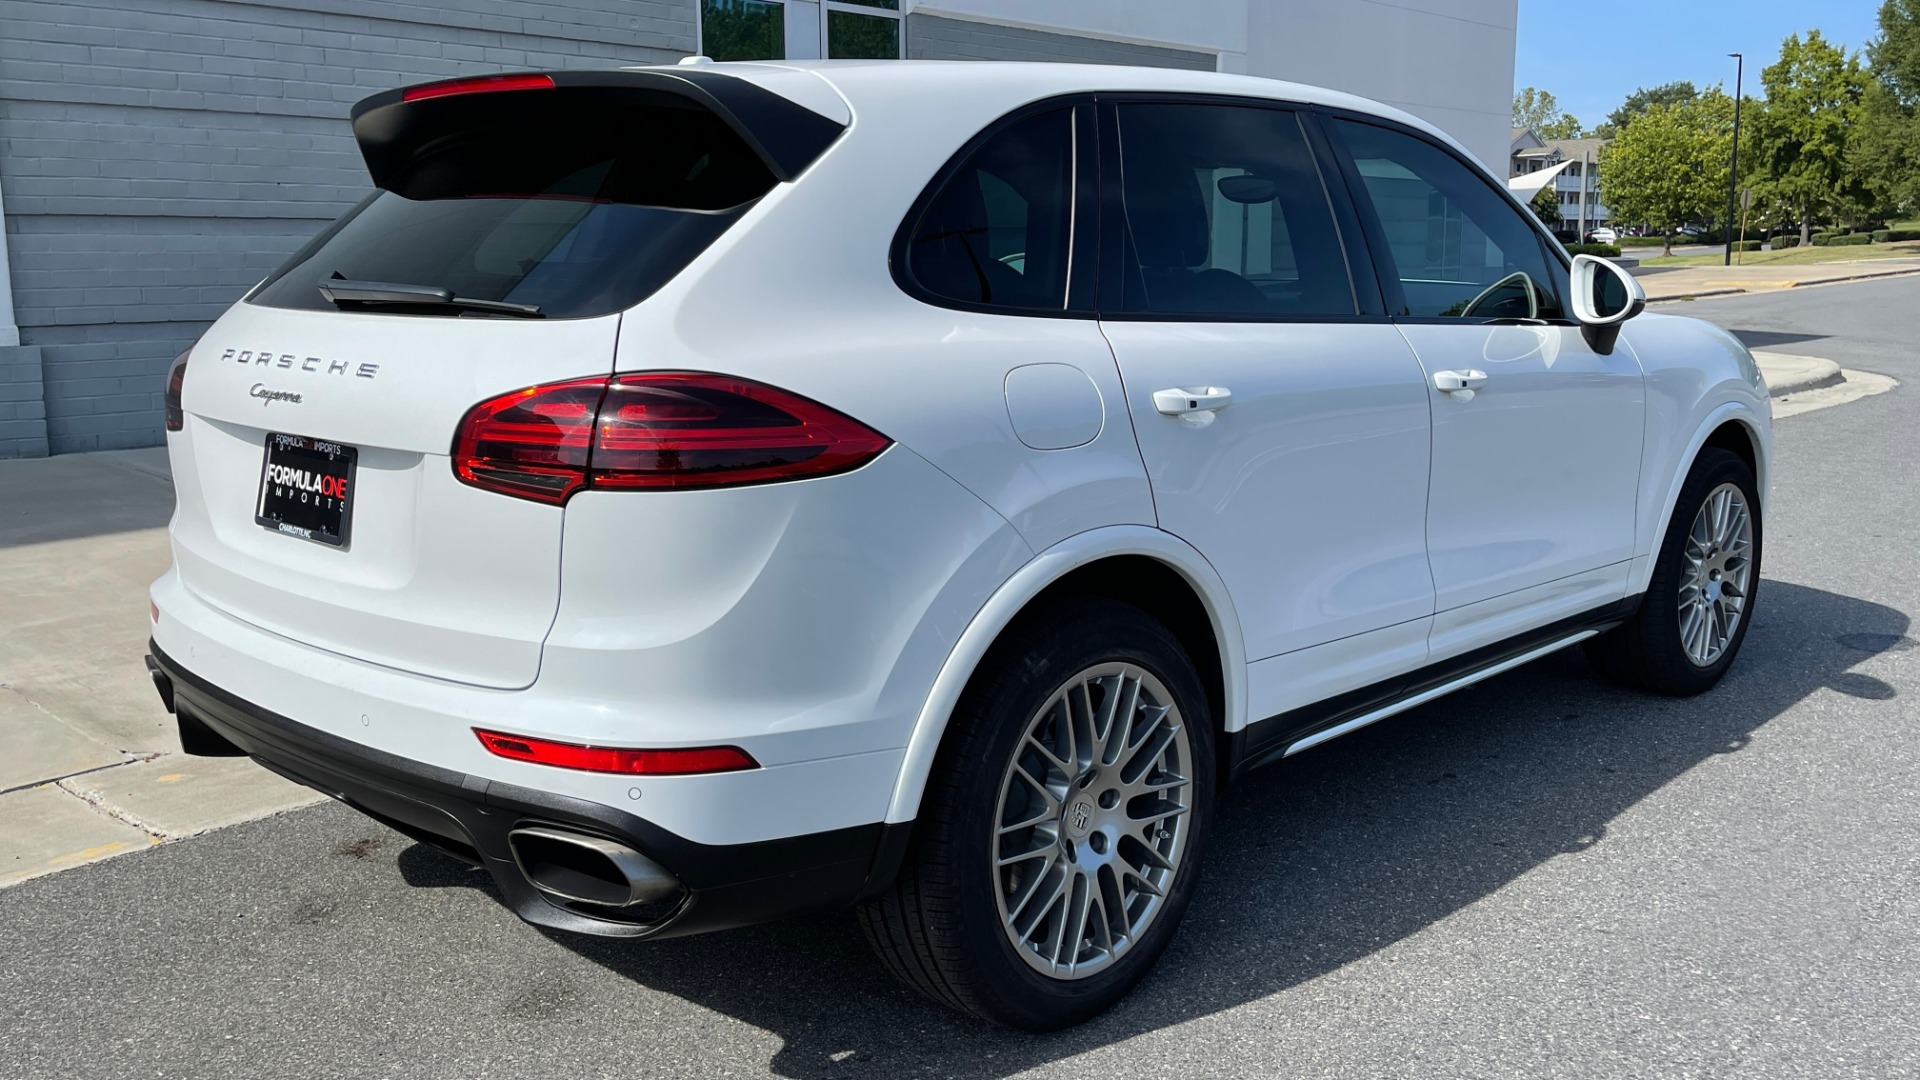 Used 2016 Porsche CAYENNE AWD / 3.6L TURBO / PREMIUM / BOSE / PANO-ROOF / NAV / LCA for sale $32,995 at Formula Imports in Charlotte NC 28227 2